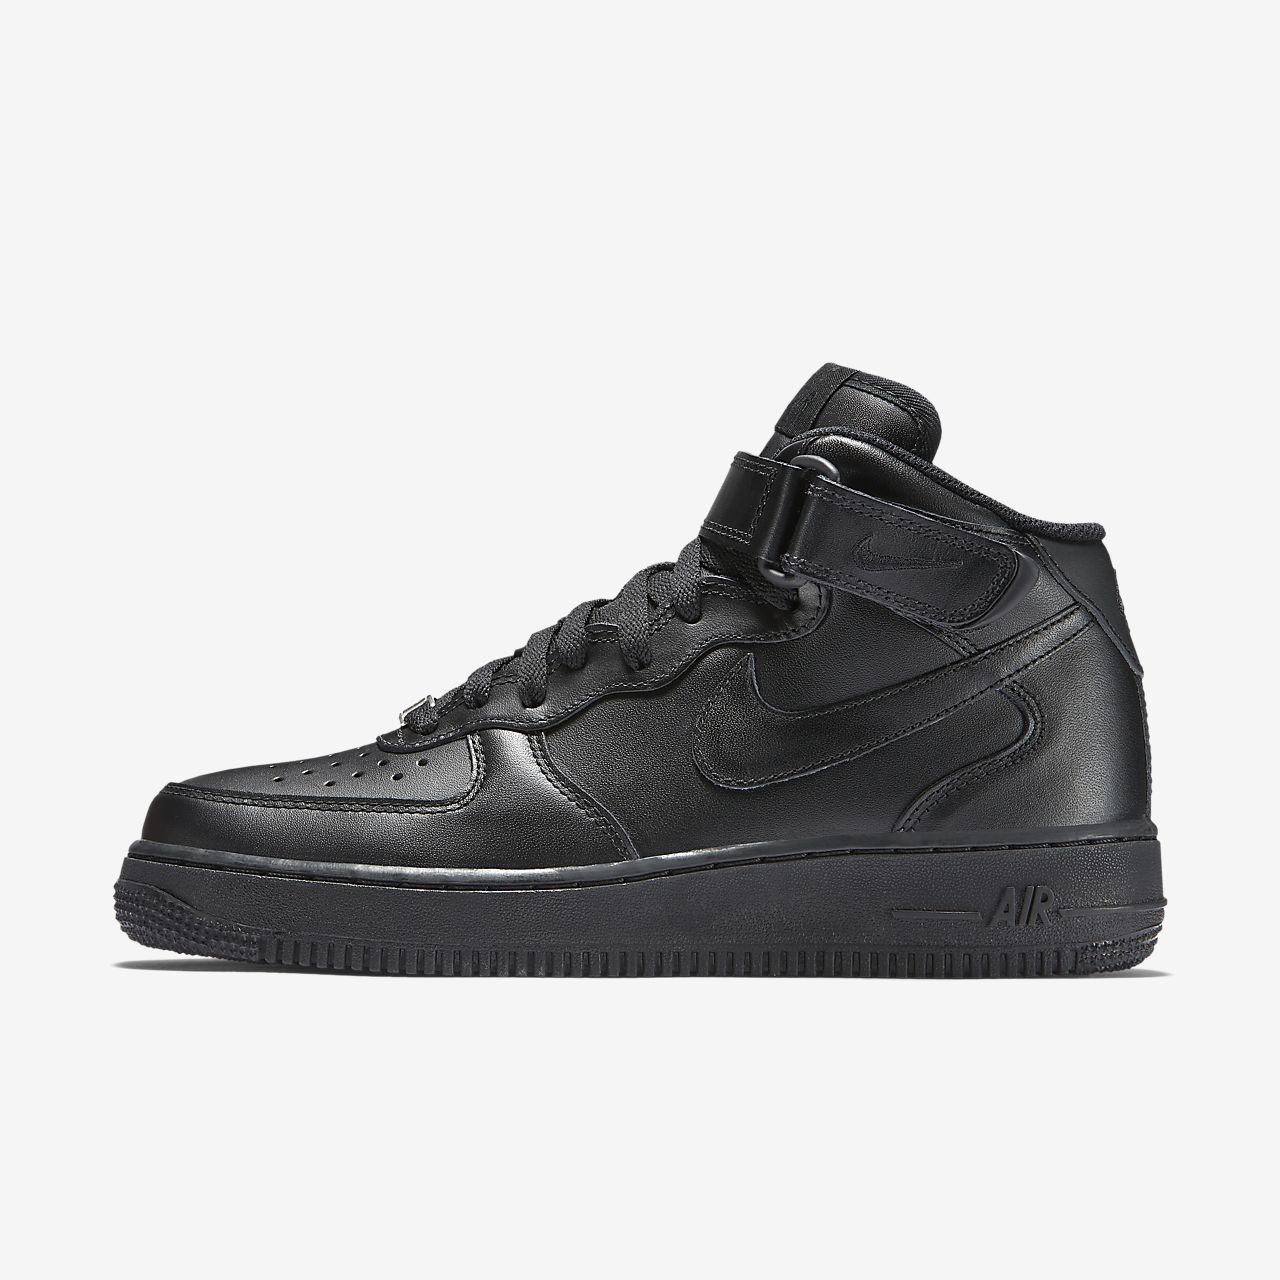 Chaussure Nike Air Force 1 Mid '07 pour Femme